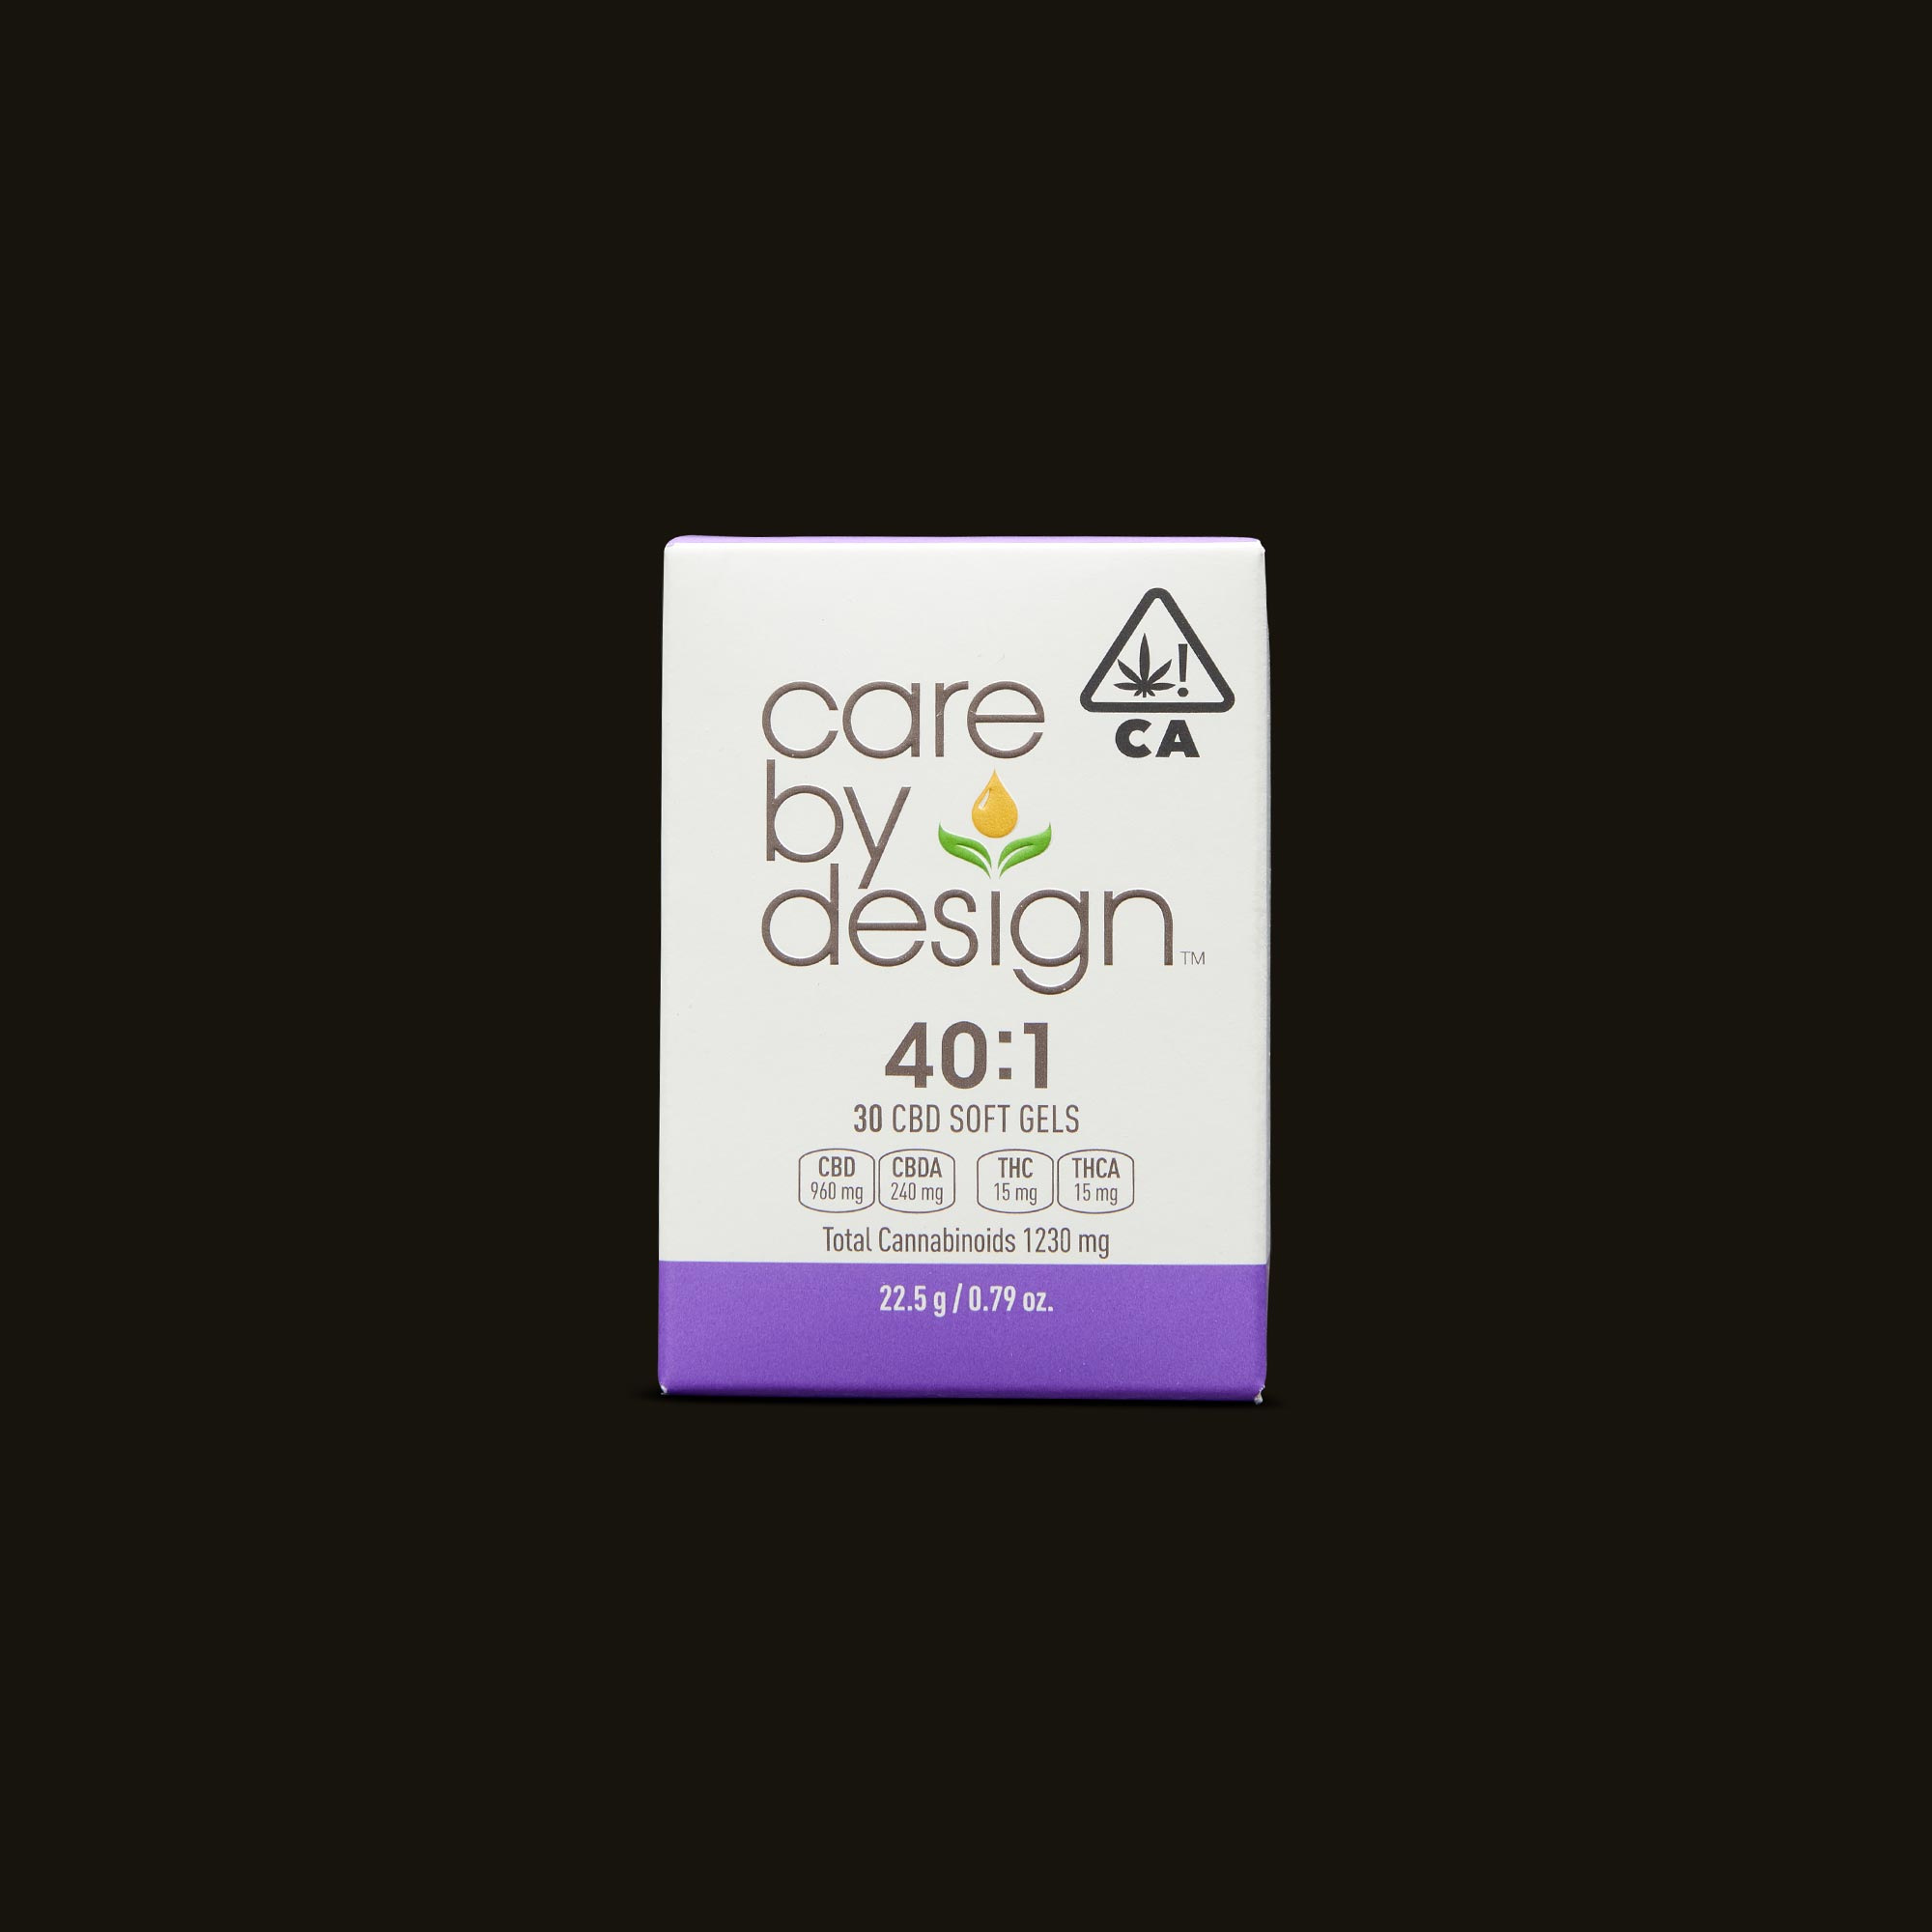 Care By Design 40:1 Soft Gels 30-Pack Front Packaging